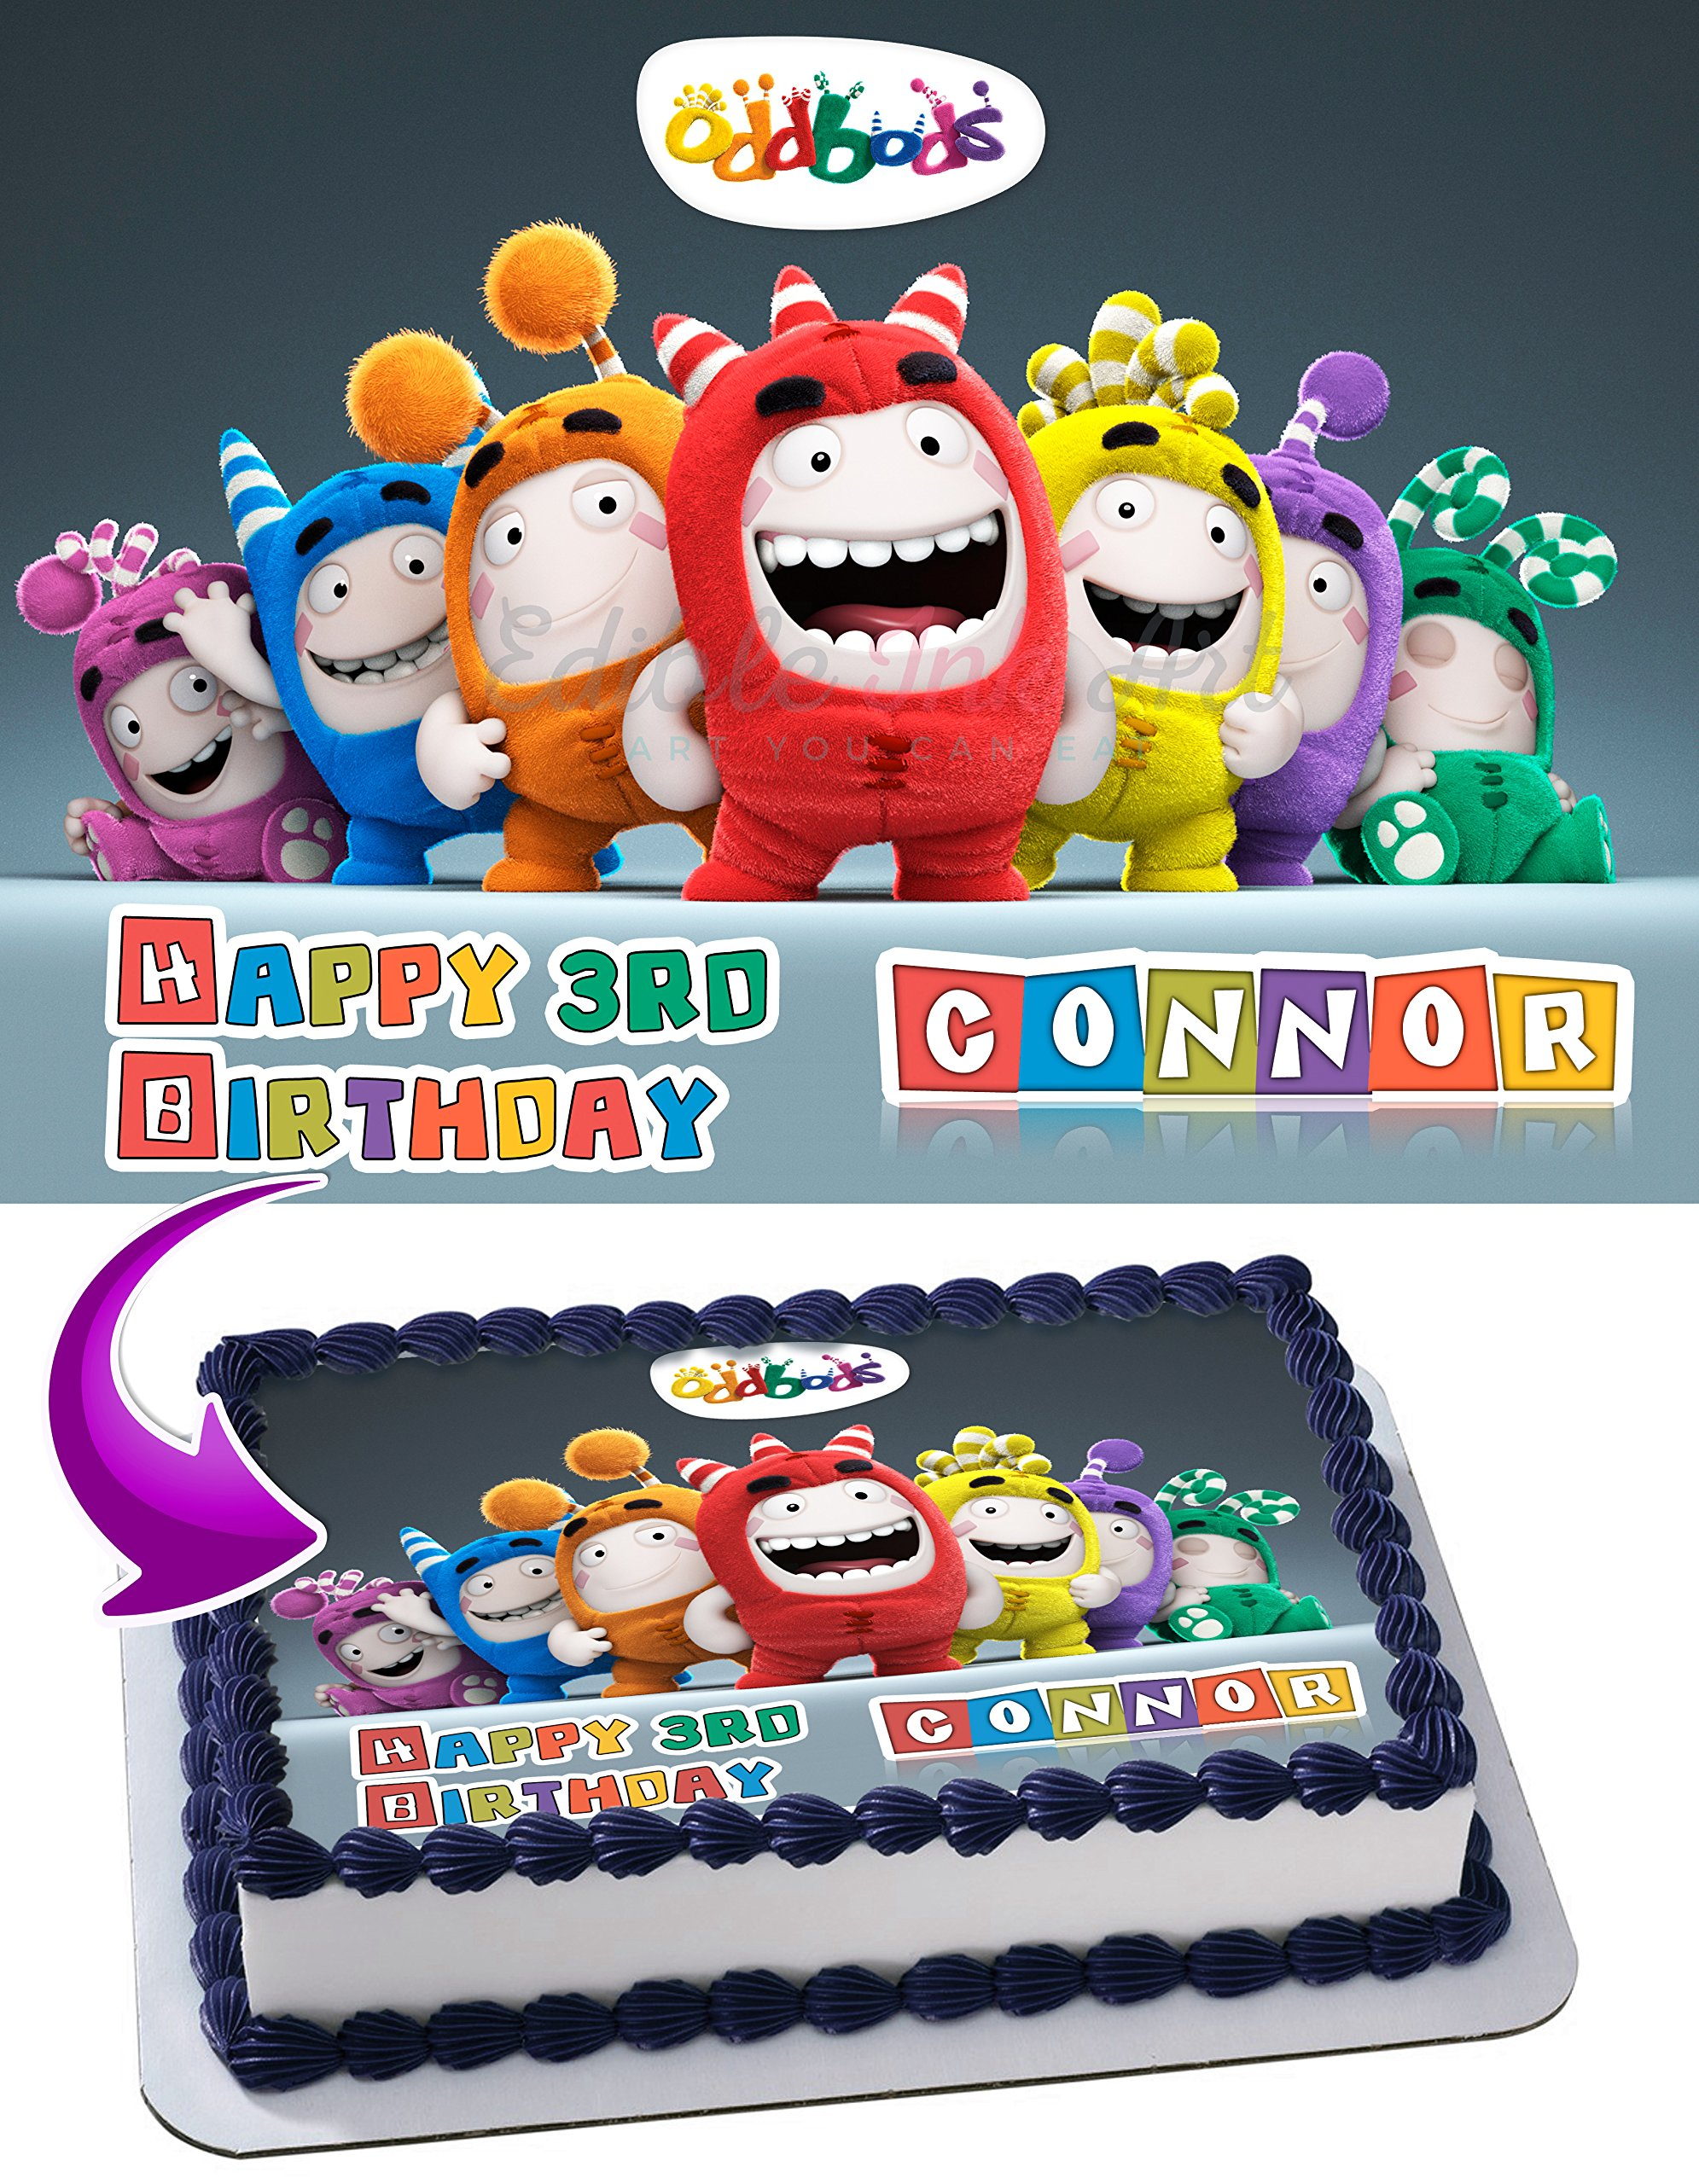 Oddbods Edible Image Cake Topper Personalized Icing Sugar Paper A4 Sheet Edible Frosting Photo Cake 1/4 ~ Best Quality Edible Image for cake